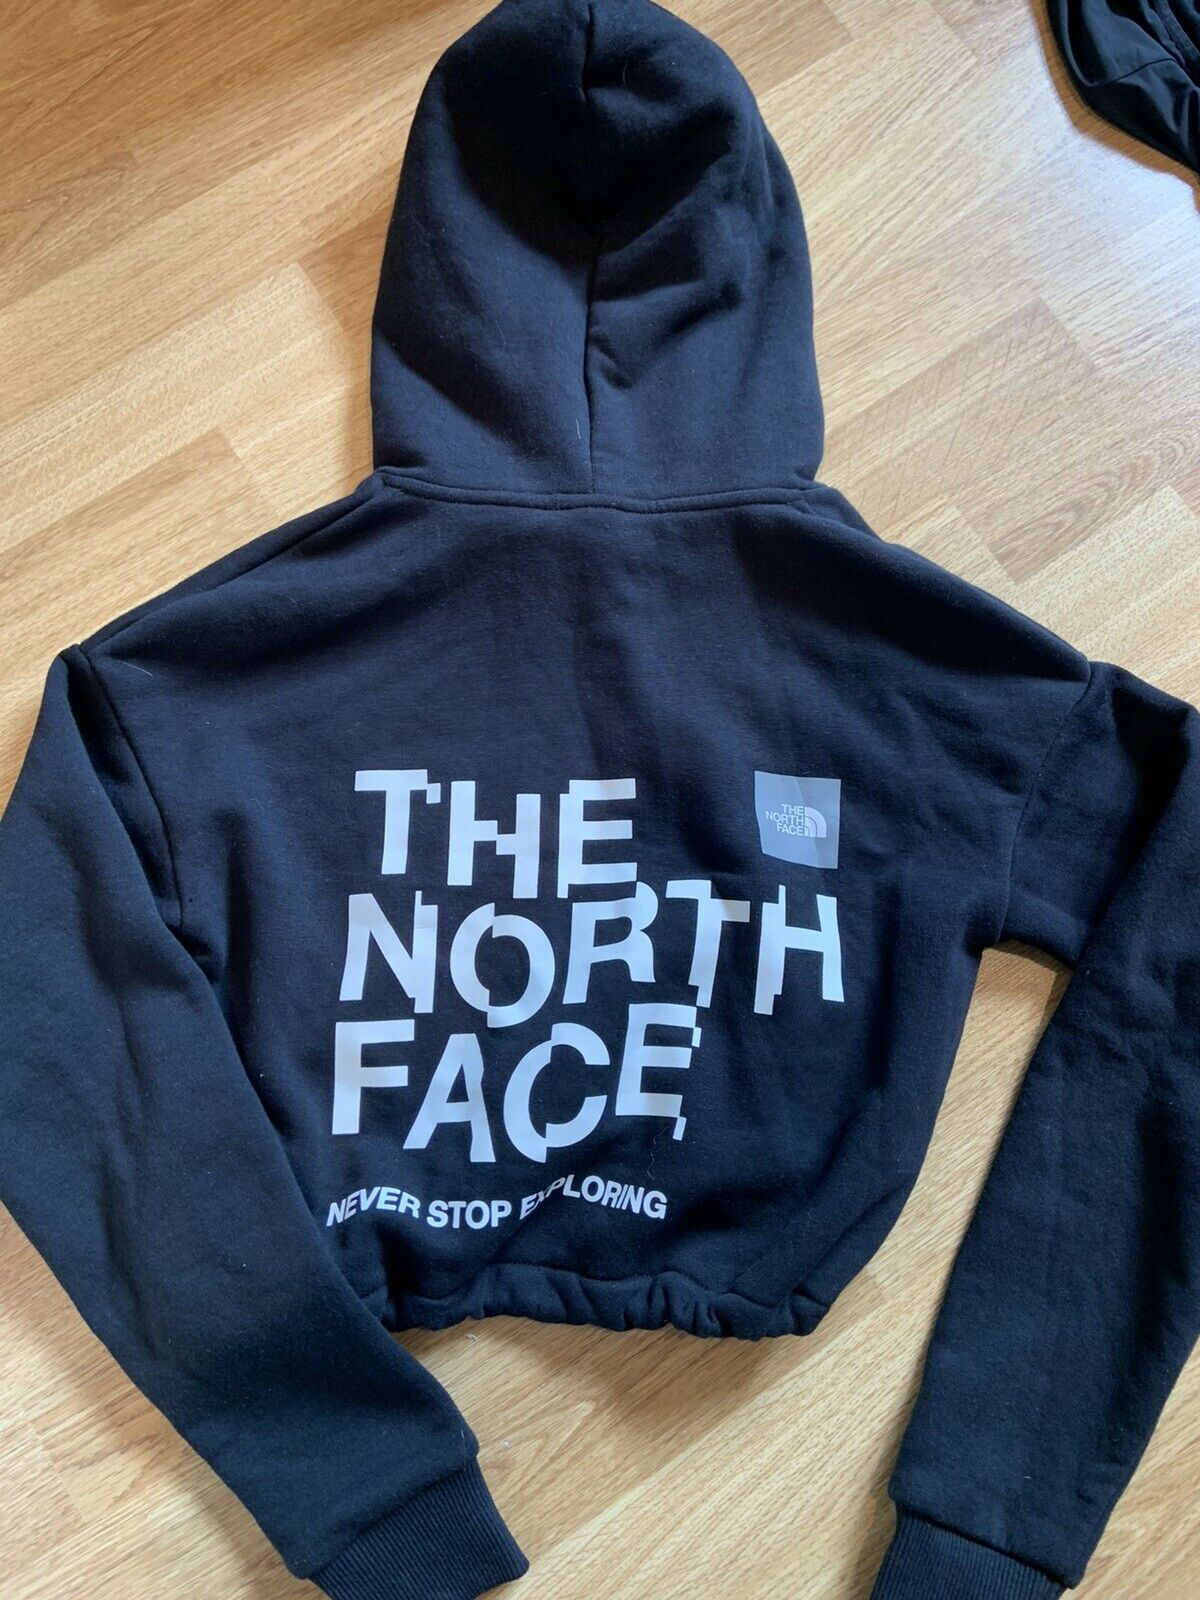 The North Face Women's Cropped Hoodie Size XS